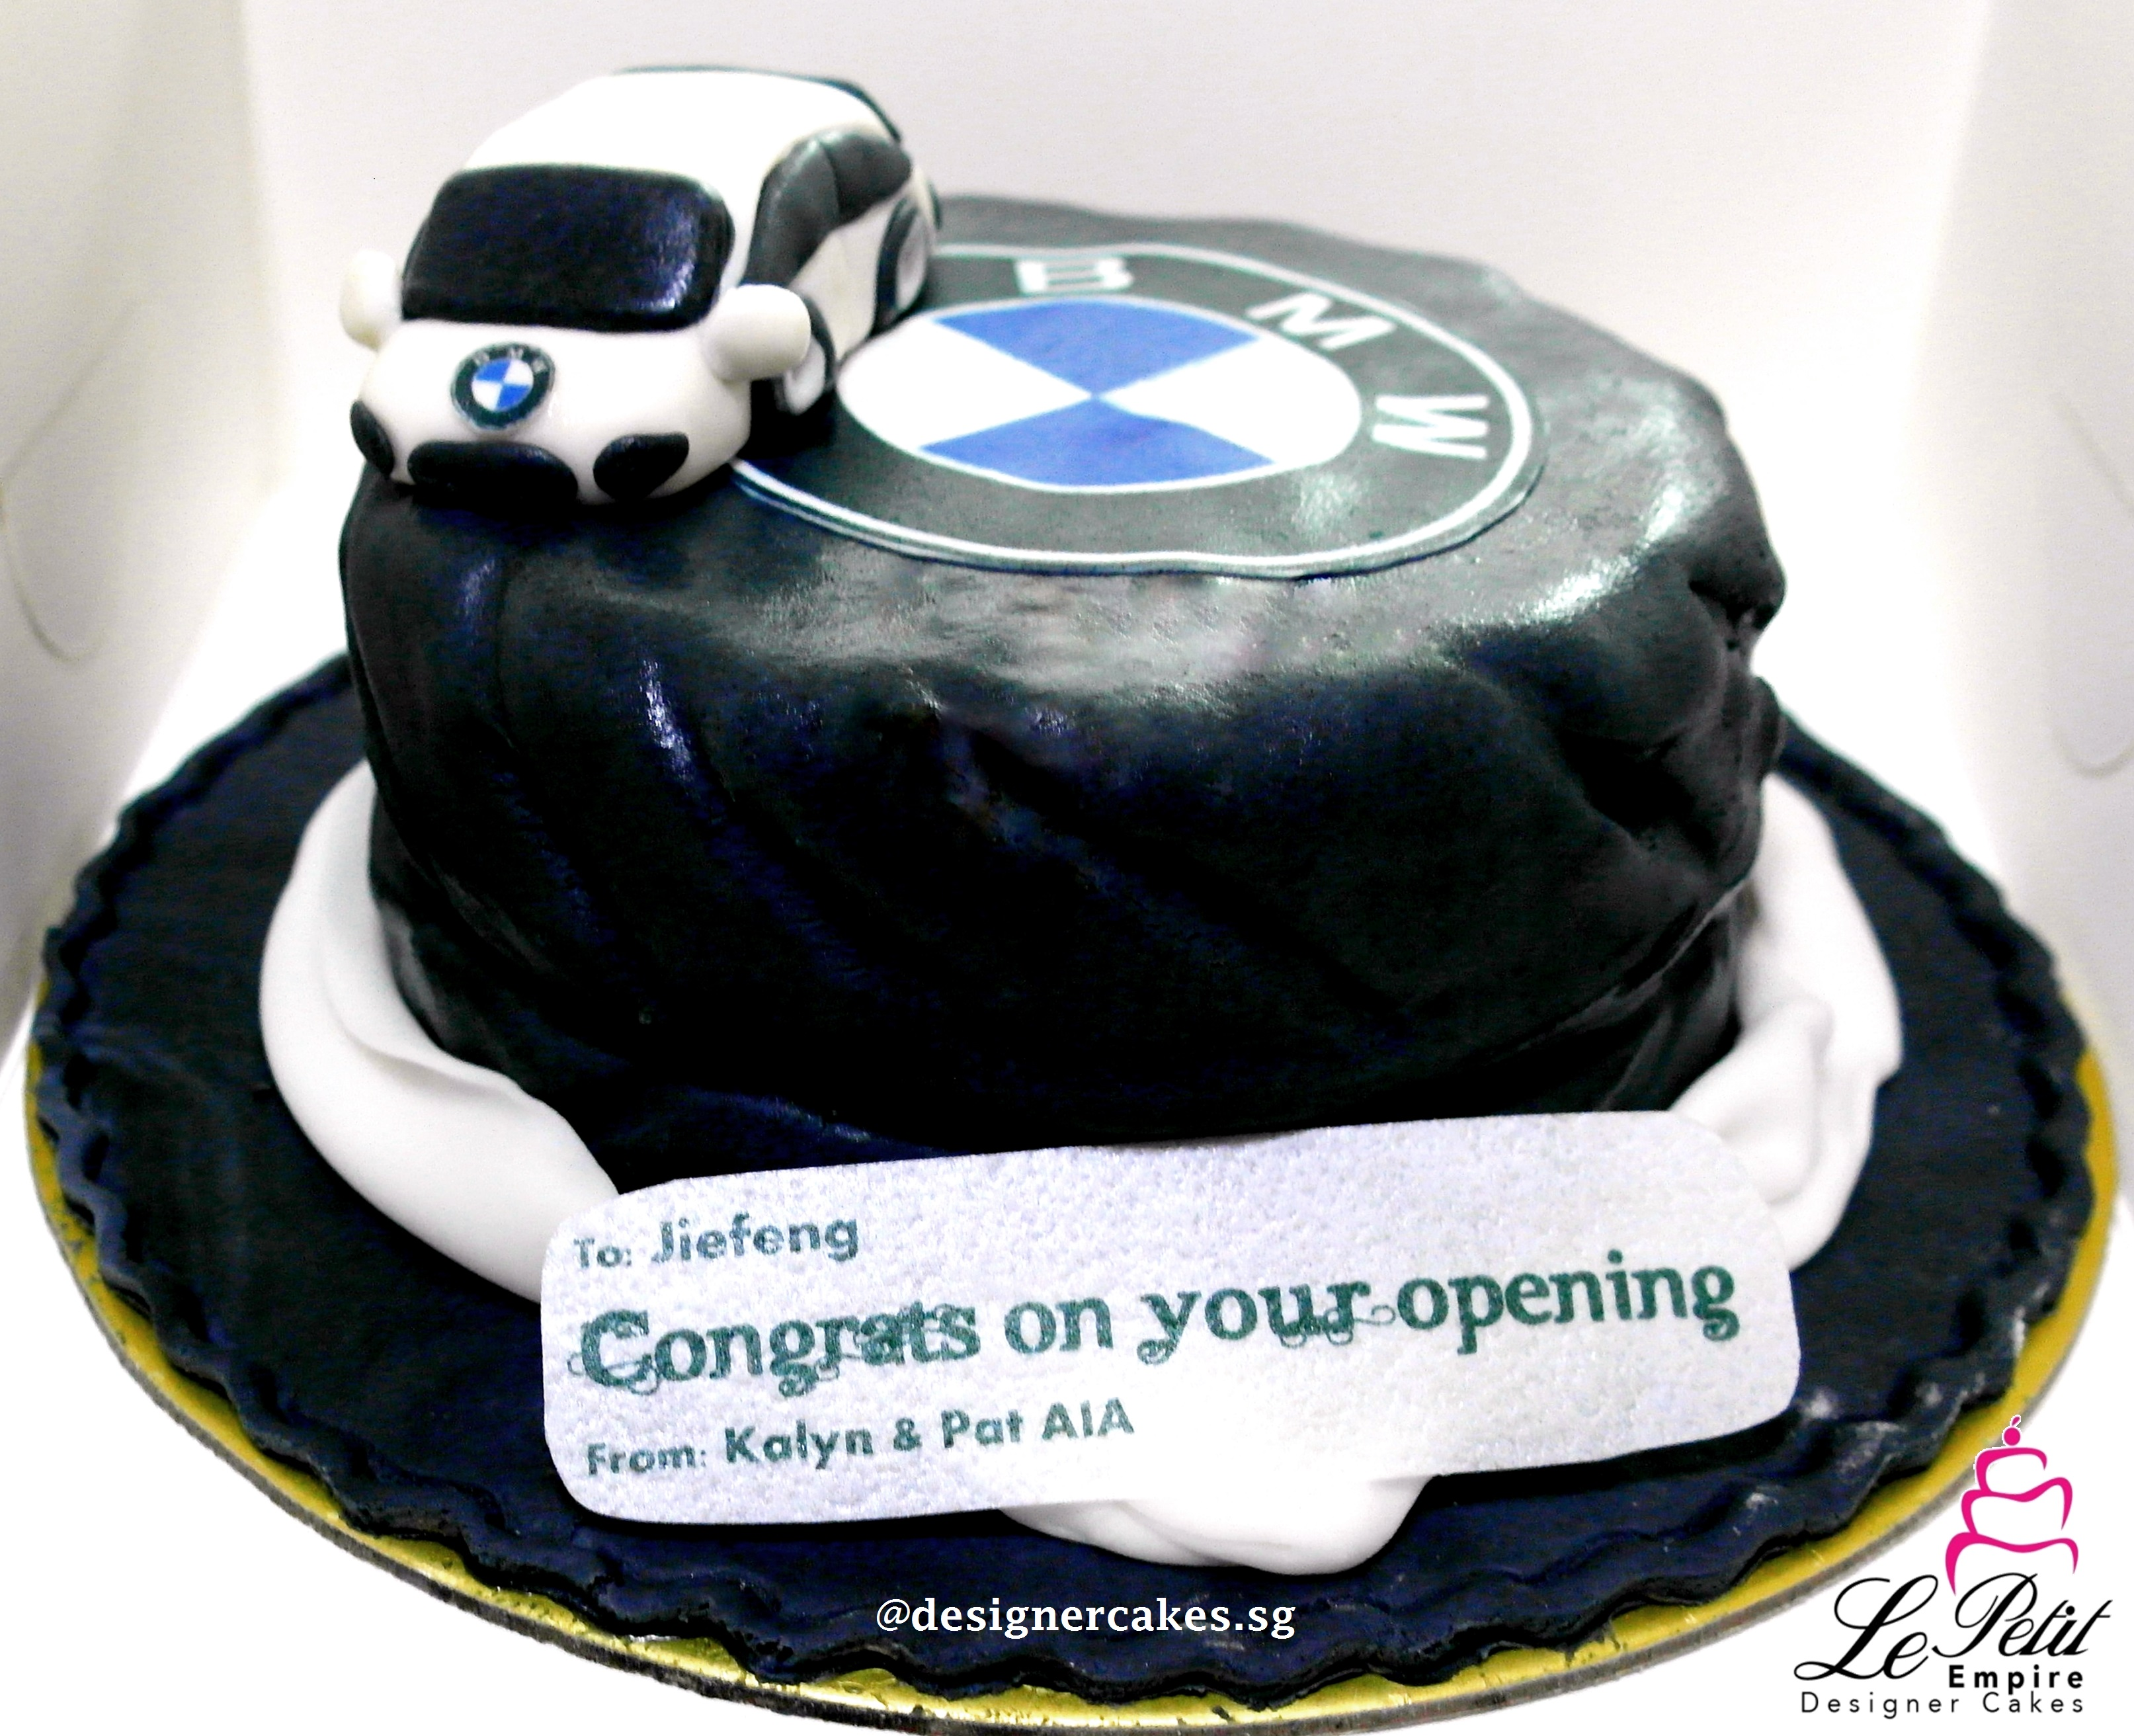 Cutomized Opening Cake, Tyre shaped cake with BMW Car on Top.